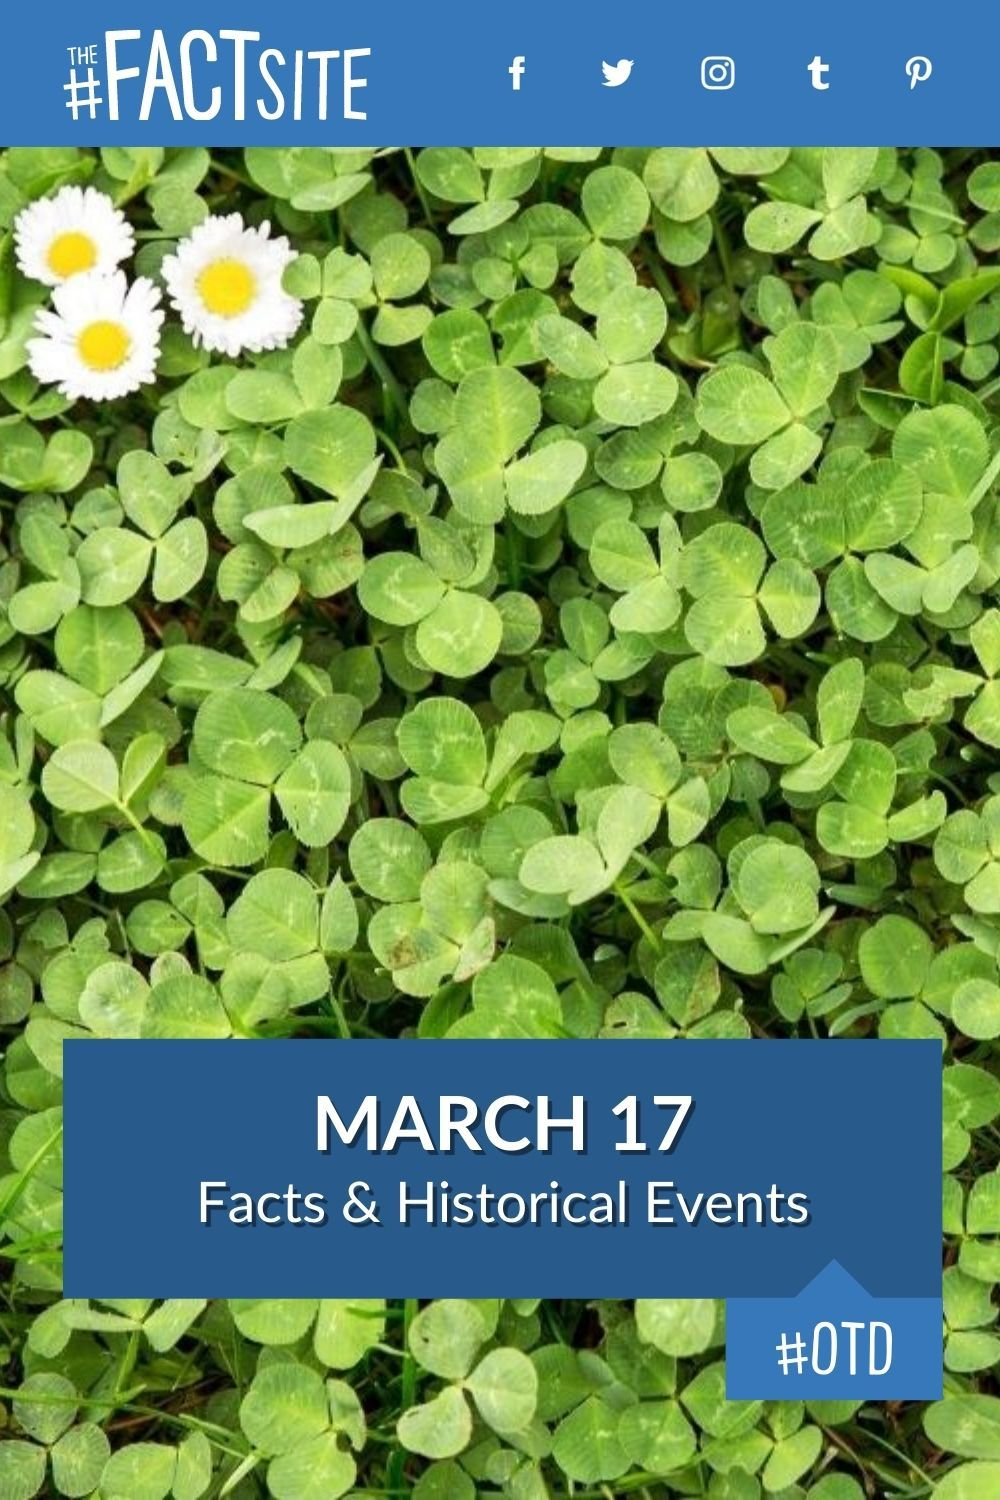 Facts & Historic Events That Happened on March 17